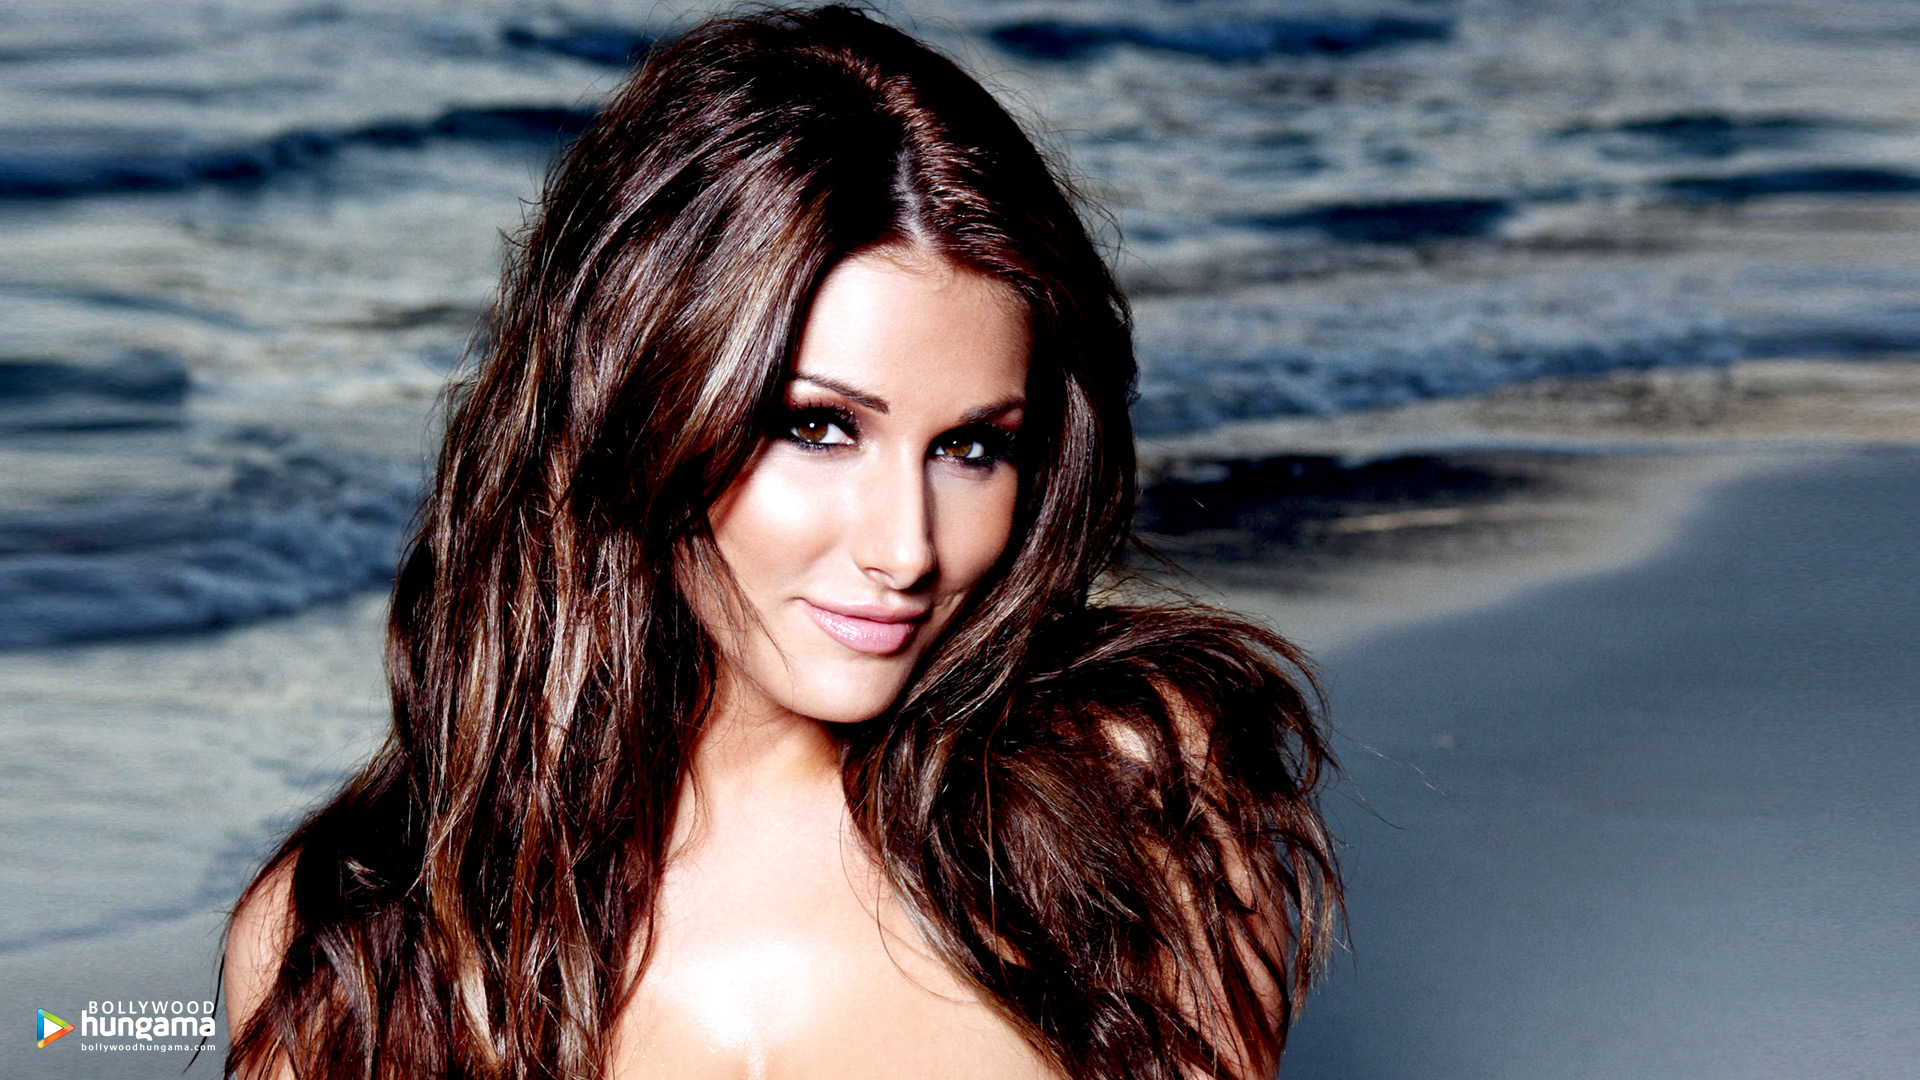 Pinder hd lucy Lucy Pinder